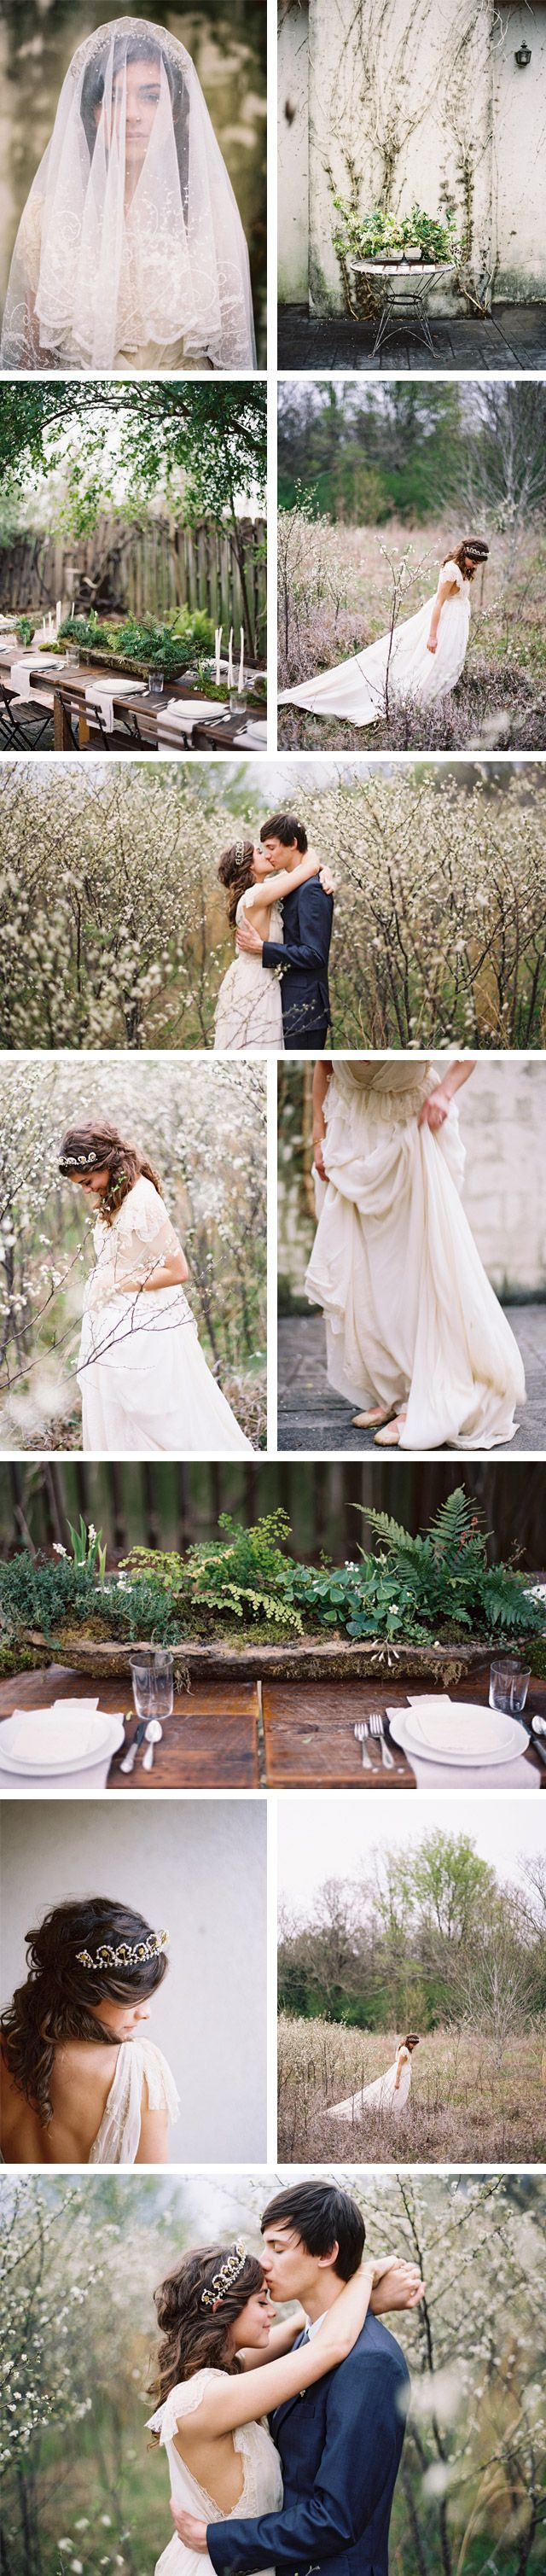 175 Best Weddings Images On Pinterest Getting Married Bridal How To Fold A Fitted Sheet Diagram Elhouz Nature Inspired Wedding Photos By Tex Petaja Foxinthepinecom